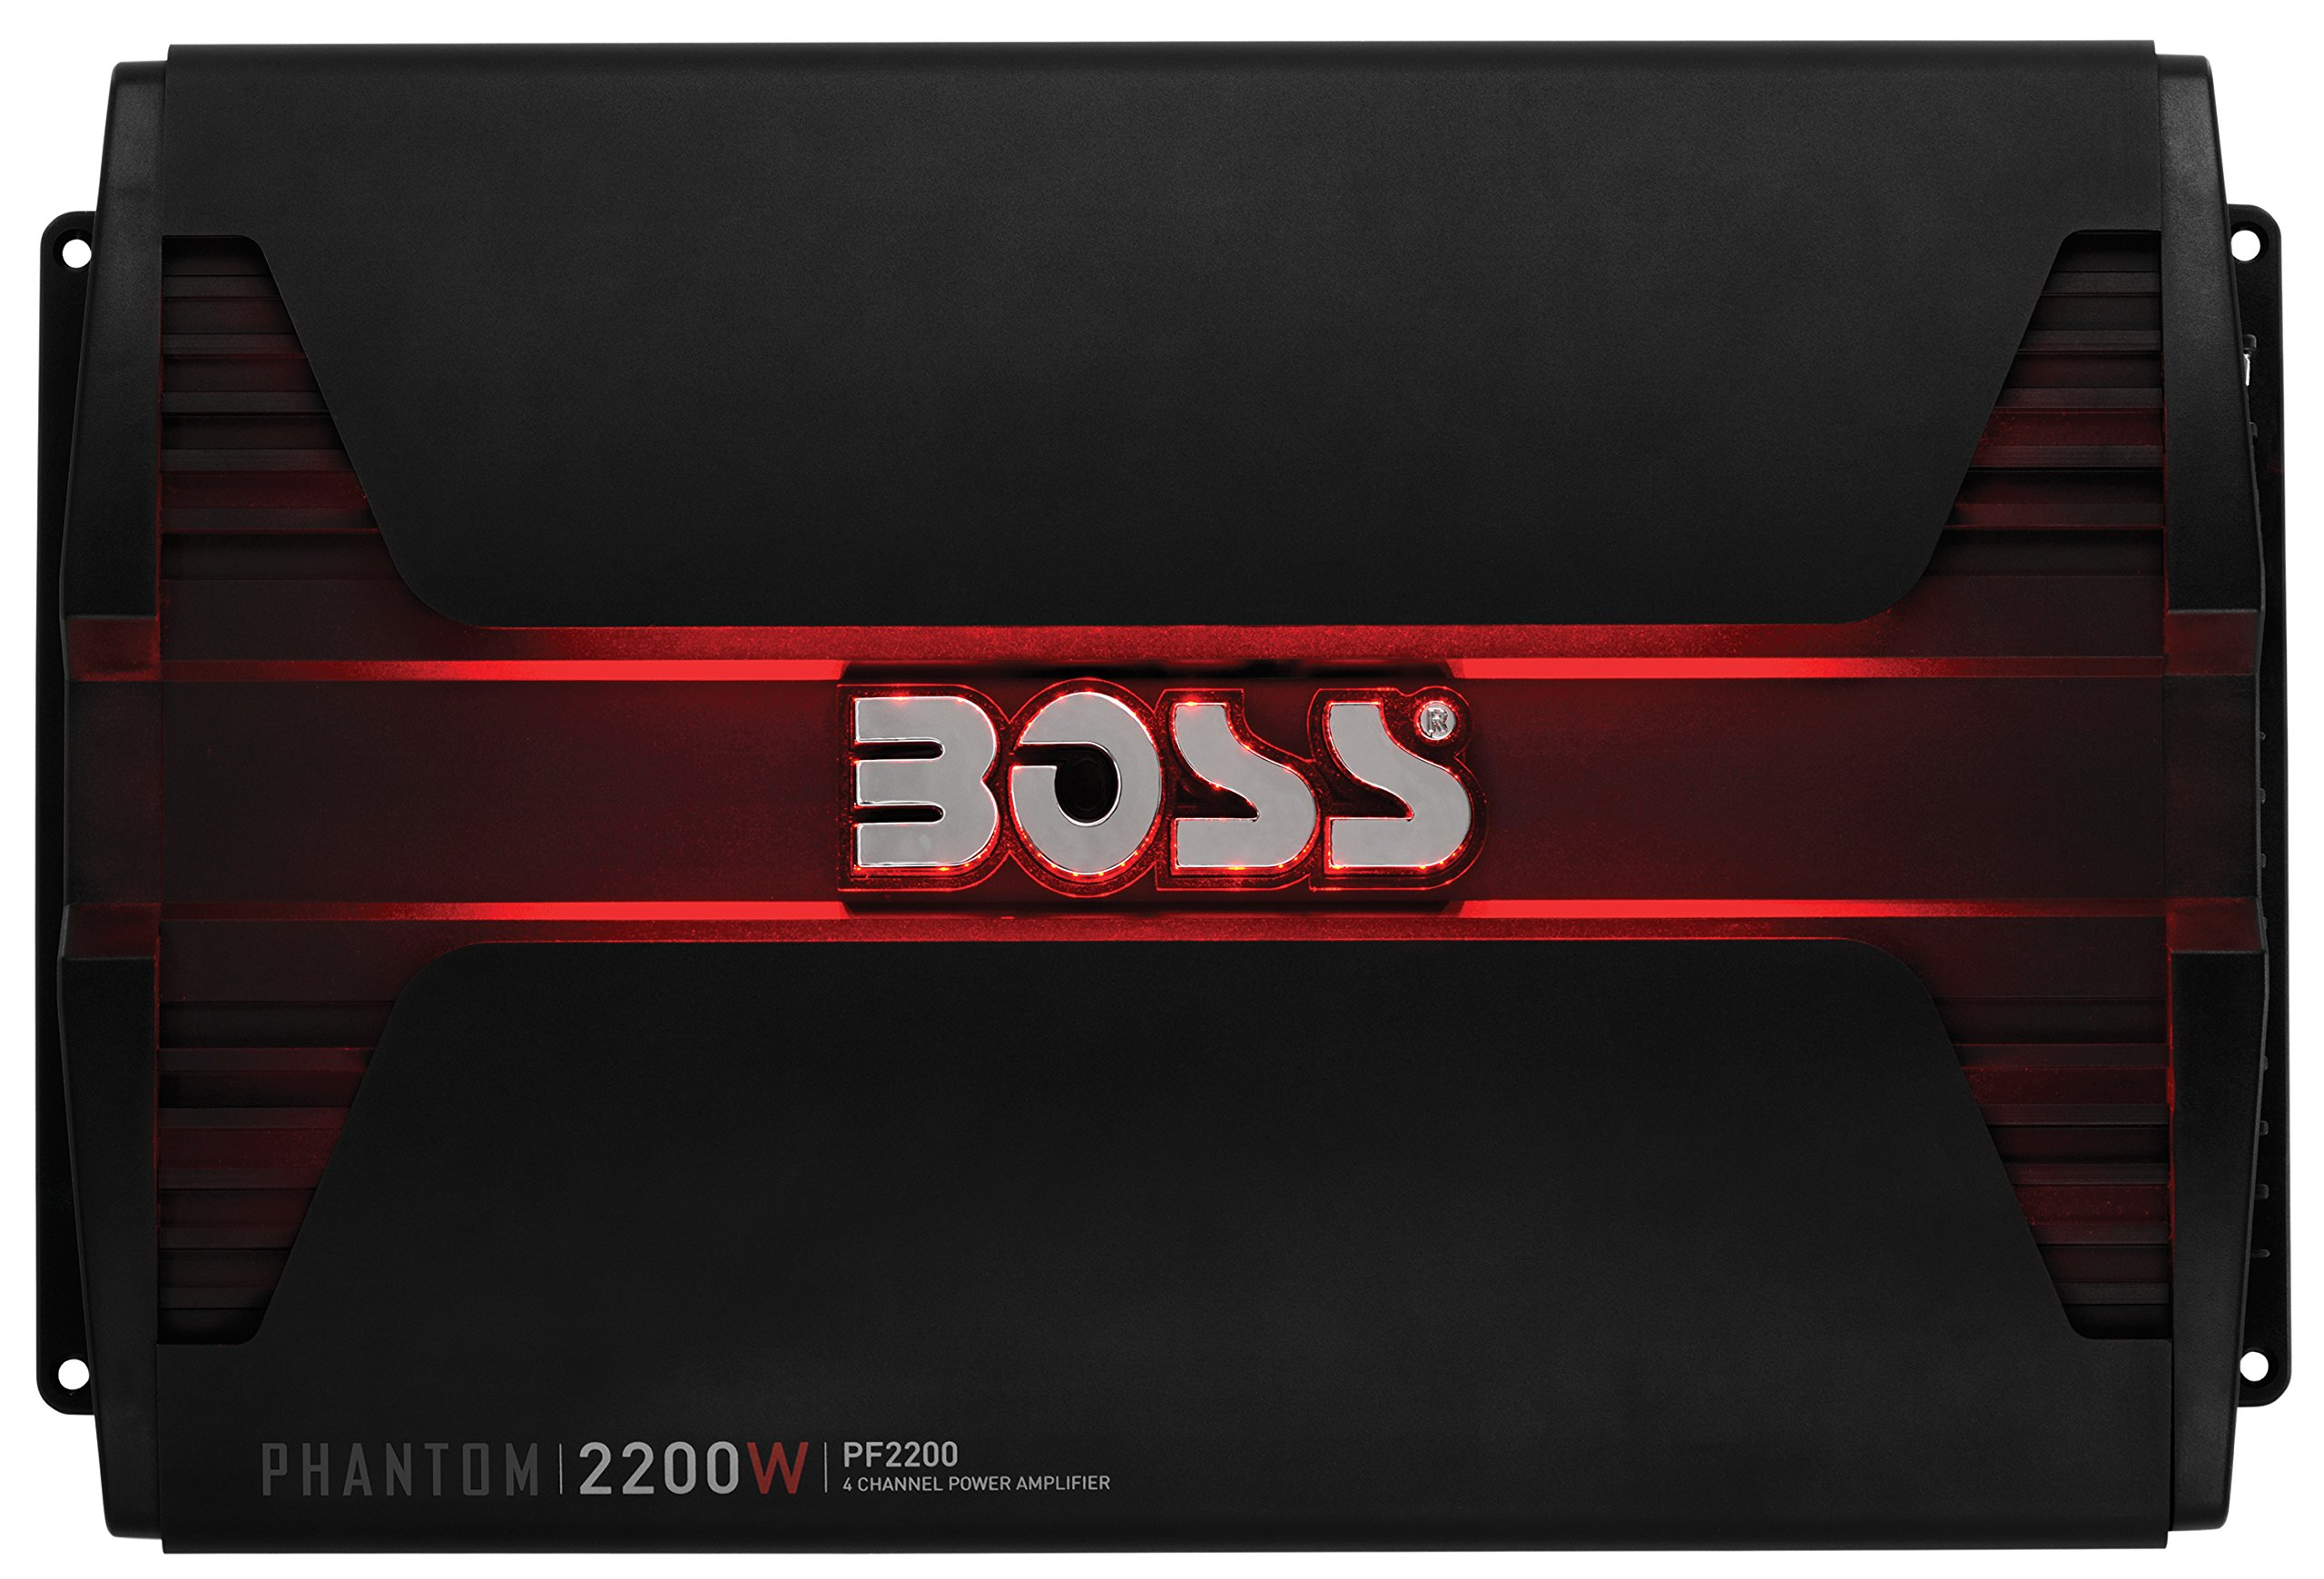 BOSS Audio PF2200 Phantom 2200 Watt, 4 Channel, 2/4 Ohm Stable Class A/B, Full Range, Bridgeable, MOSFET Car Amplifier with Remote Subwoofer Control